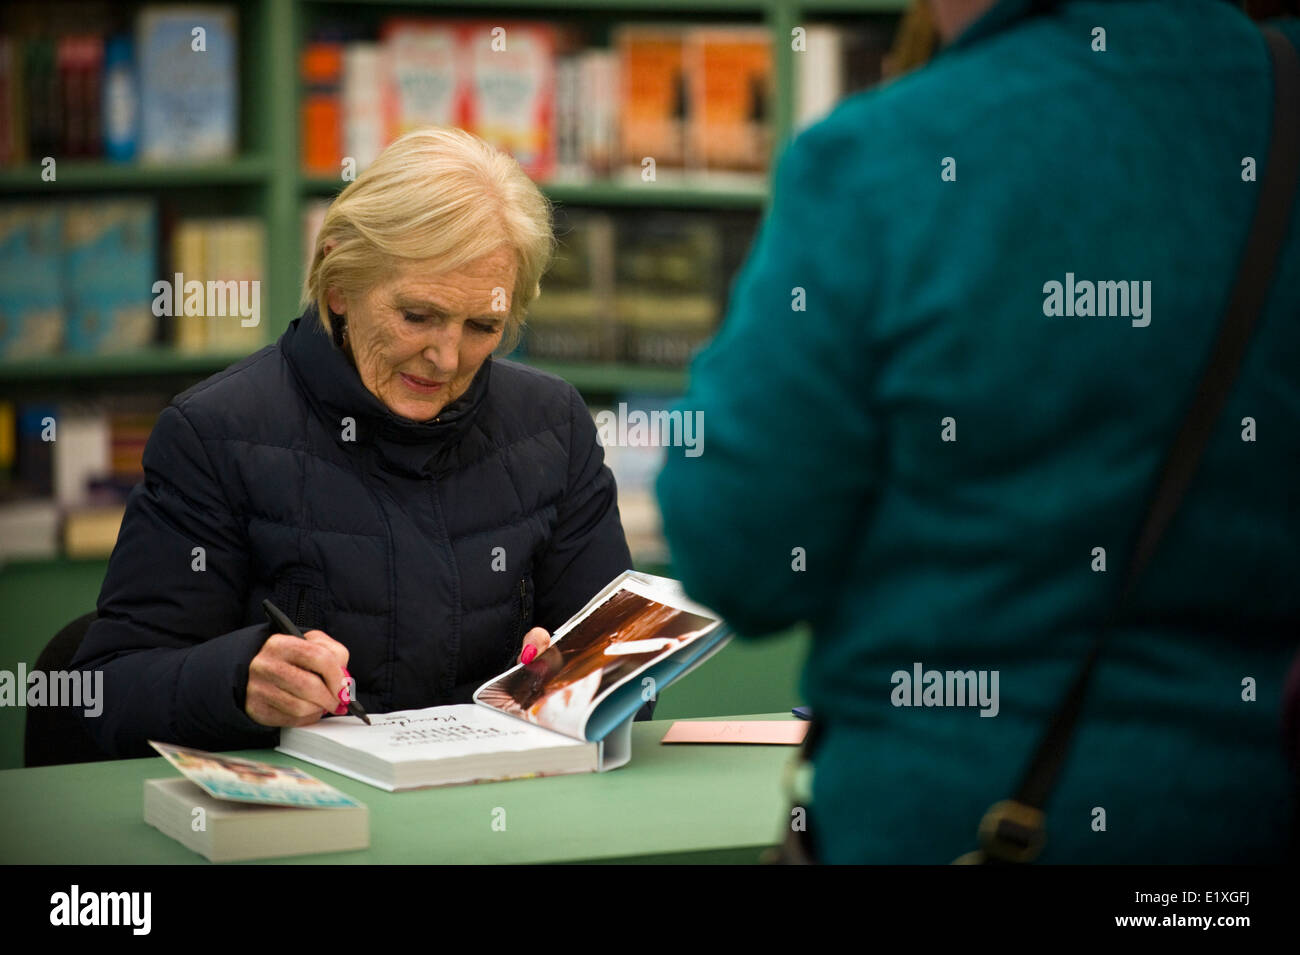 Mary Berry book signing at Hay Festival 2014 ©Jeff Morgan - Stock Image